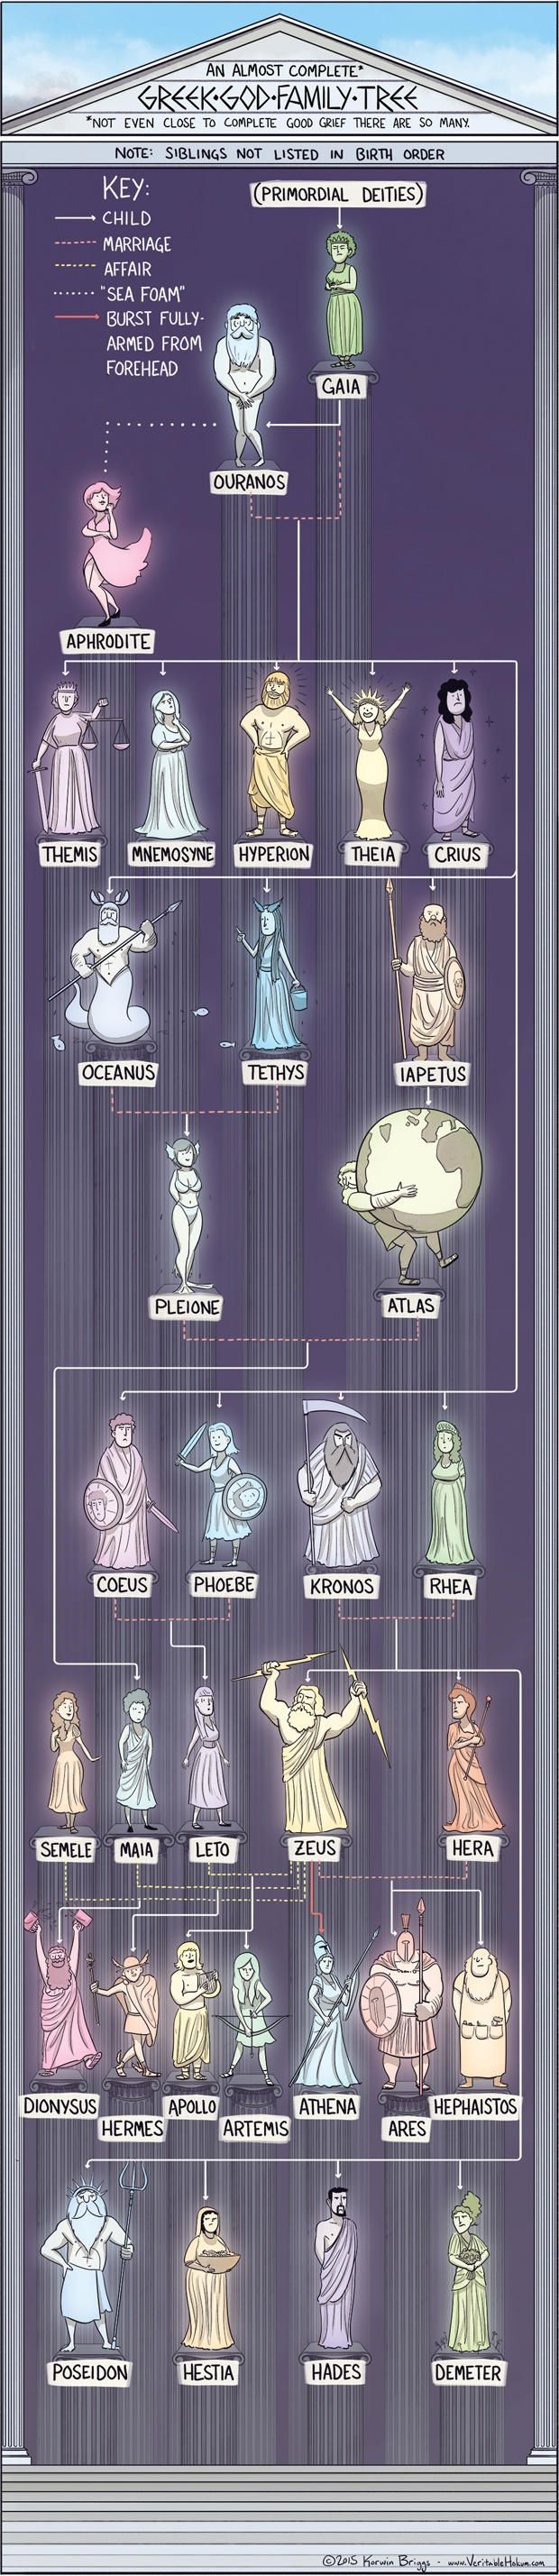 Get Tangled in These Mythical God Family Trees | Mental Floss